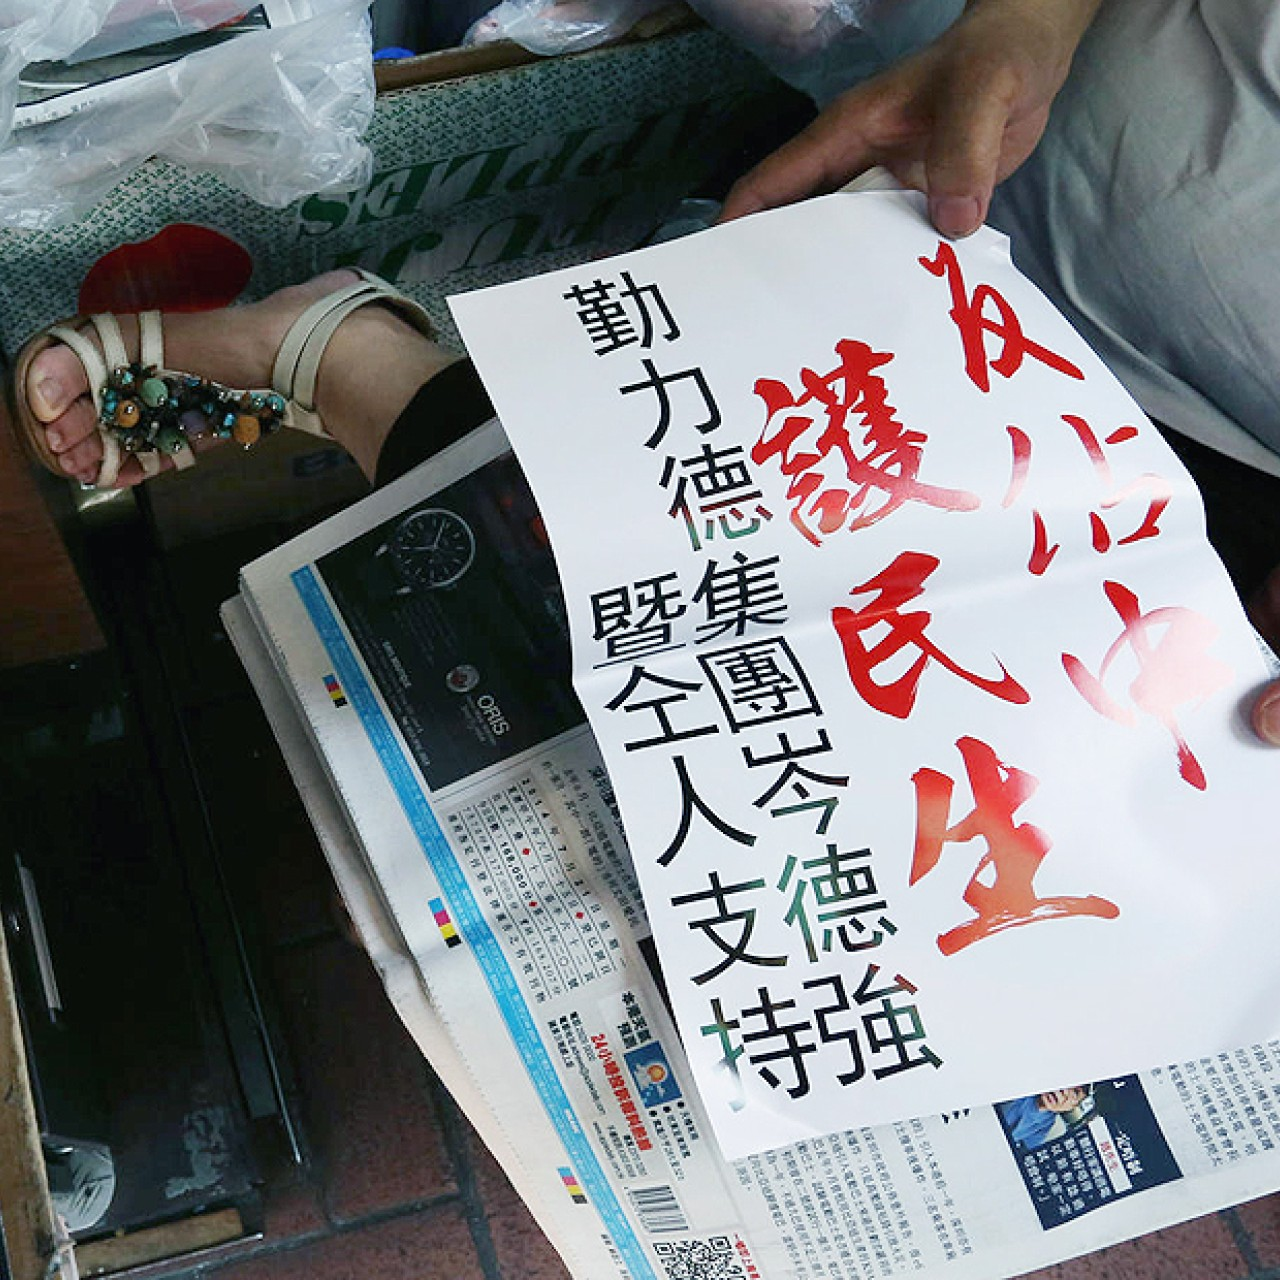 Newspaper vendors offered cash to display and hand out anti